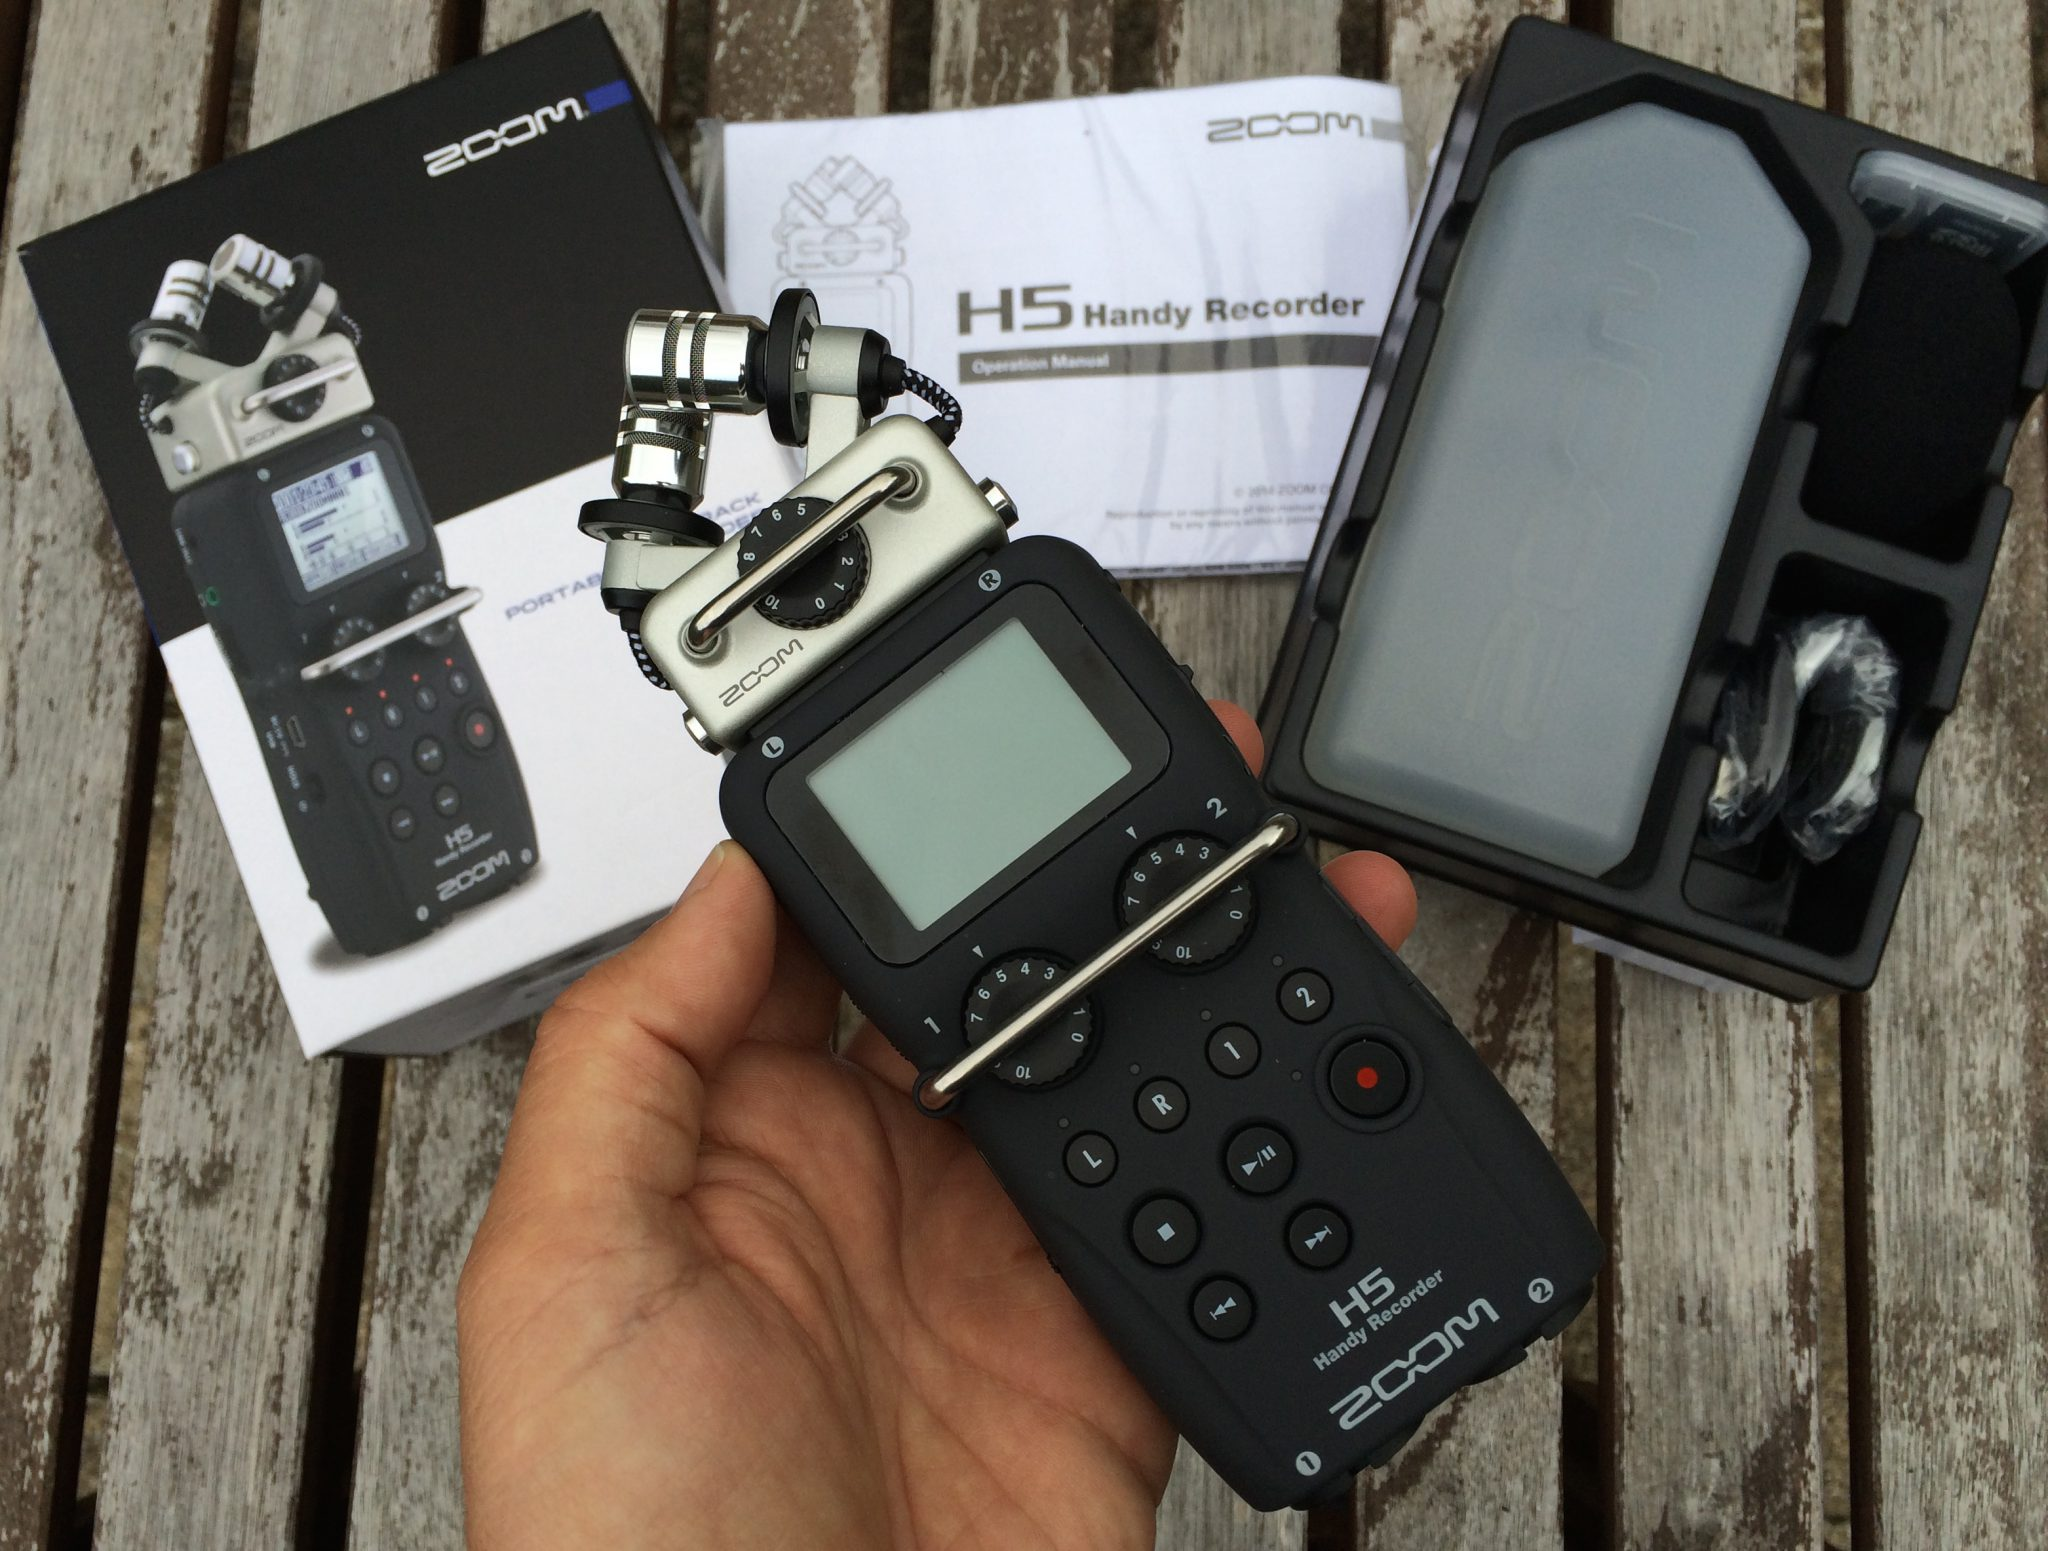 Zoom H5 Handy Recorder Review